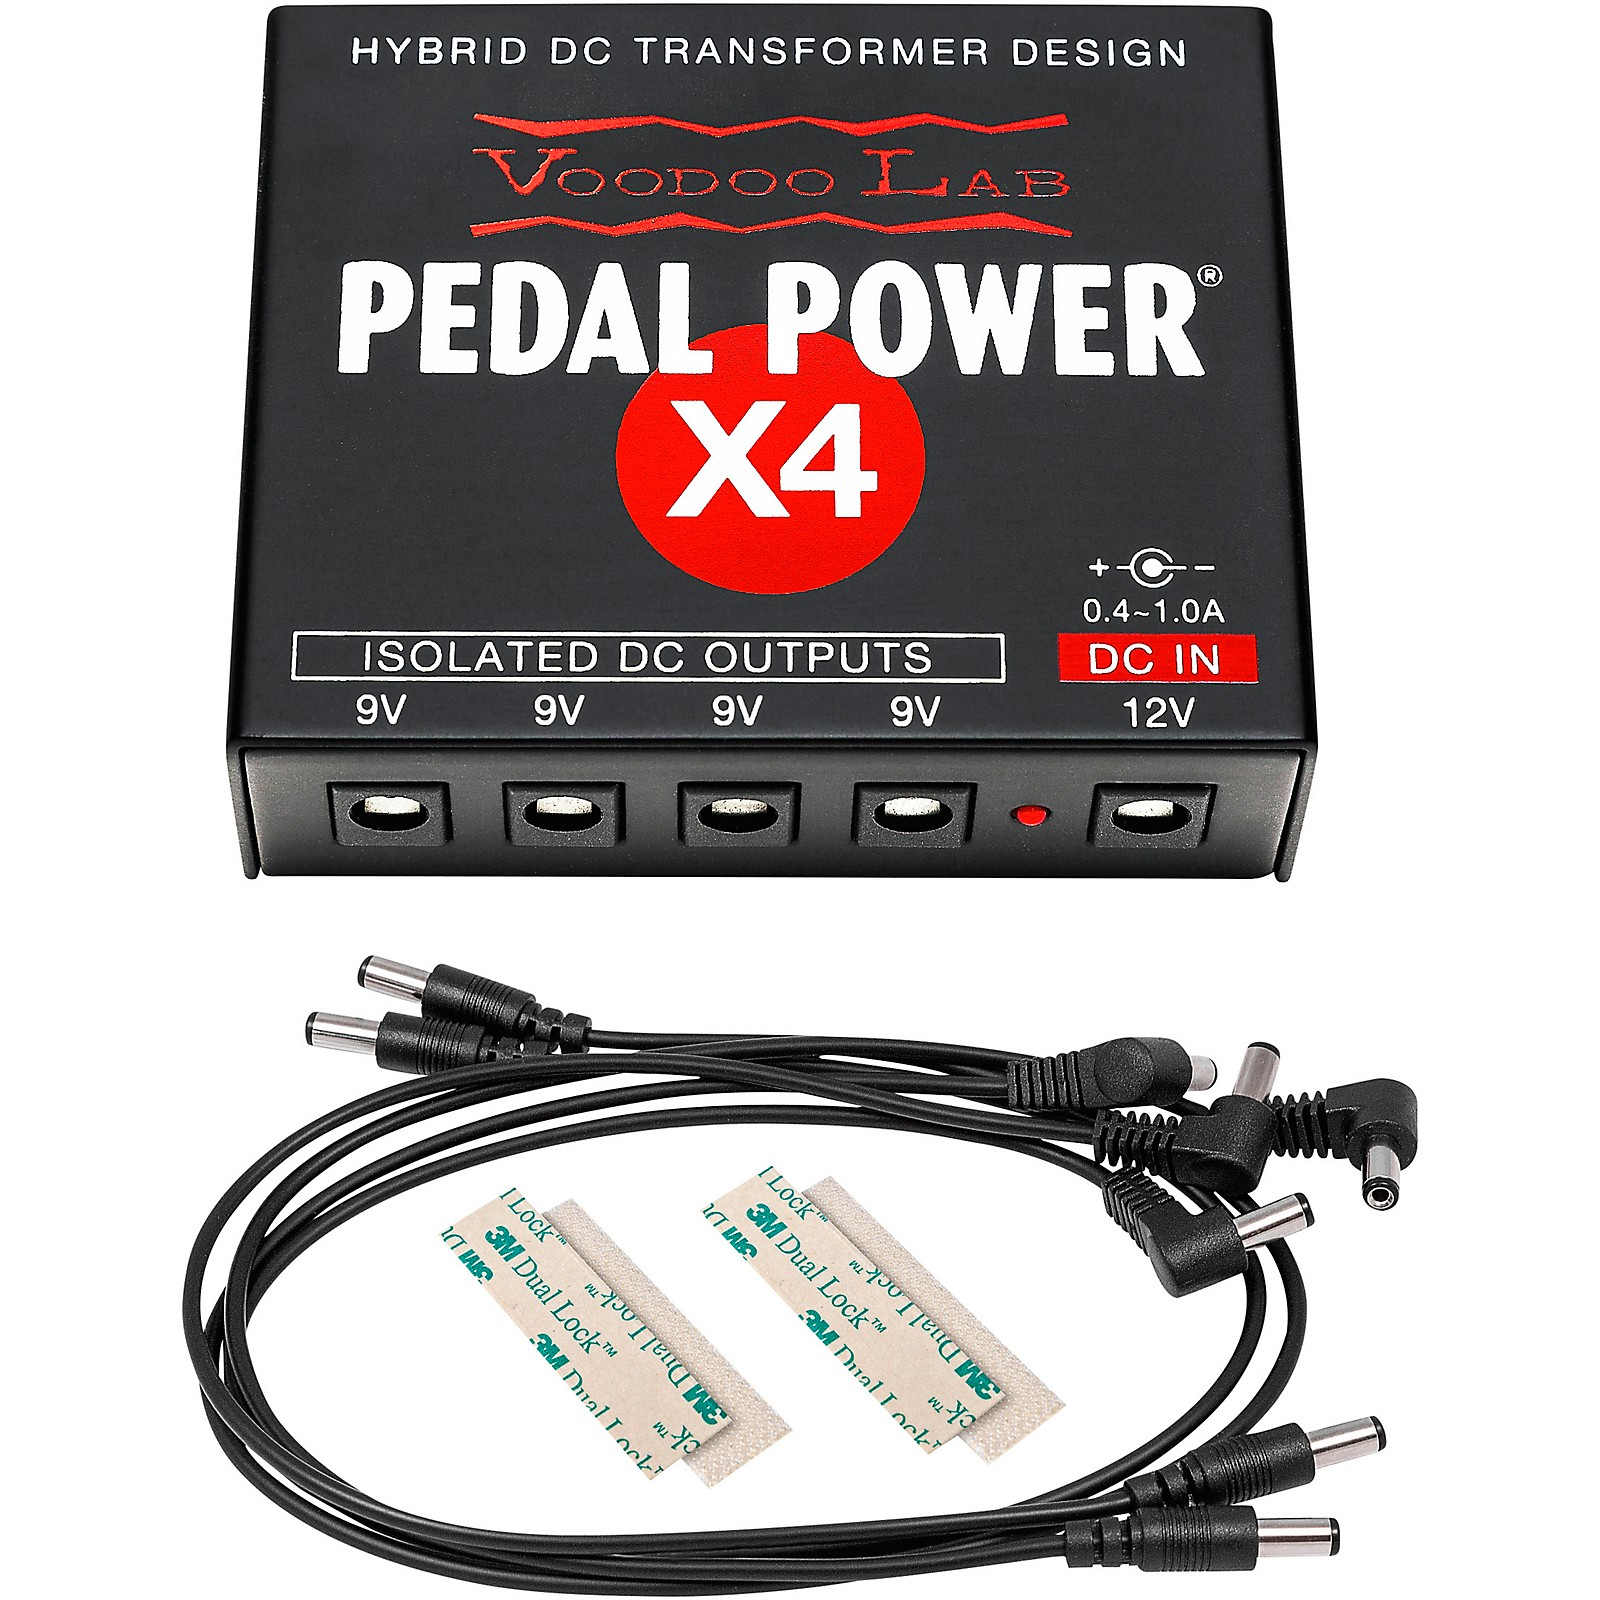 Voodoo Lab Pedal Power X4 Expander Kit